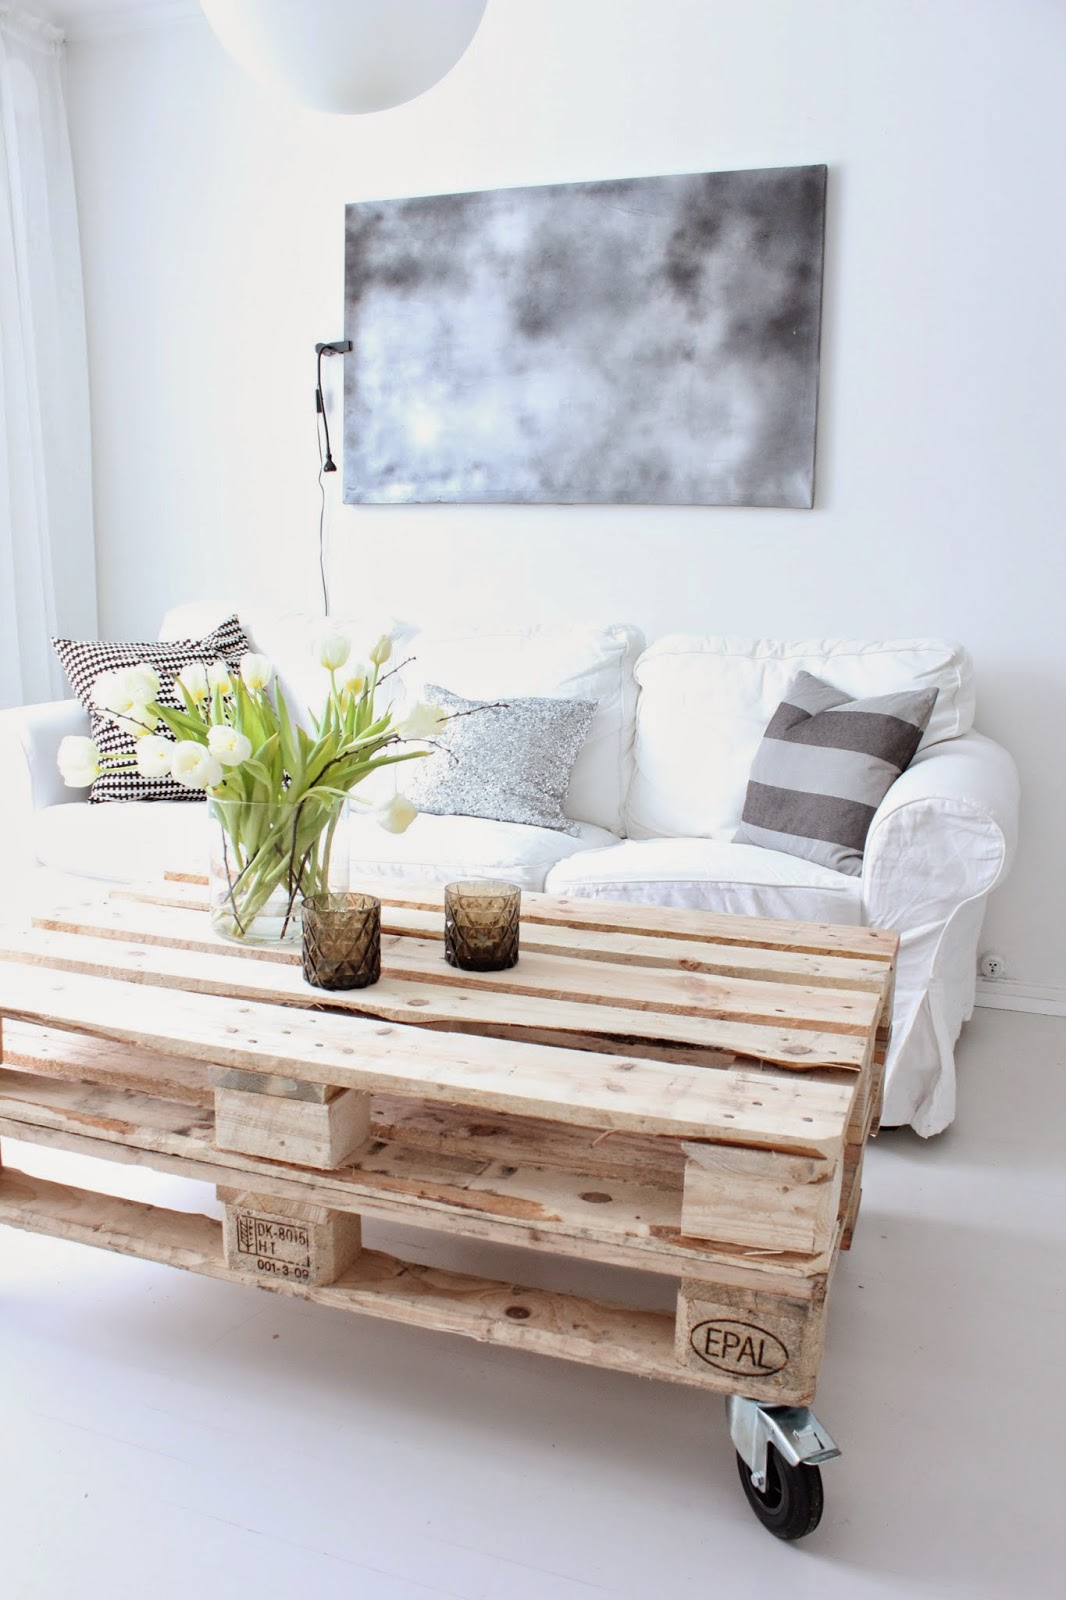 DIY Furniture and Home Decor Tutorials  The 36th AVENUE